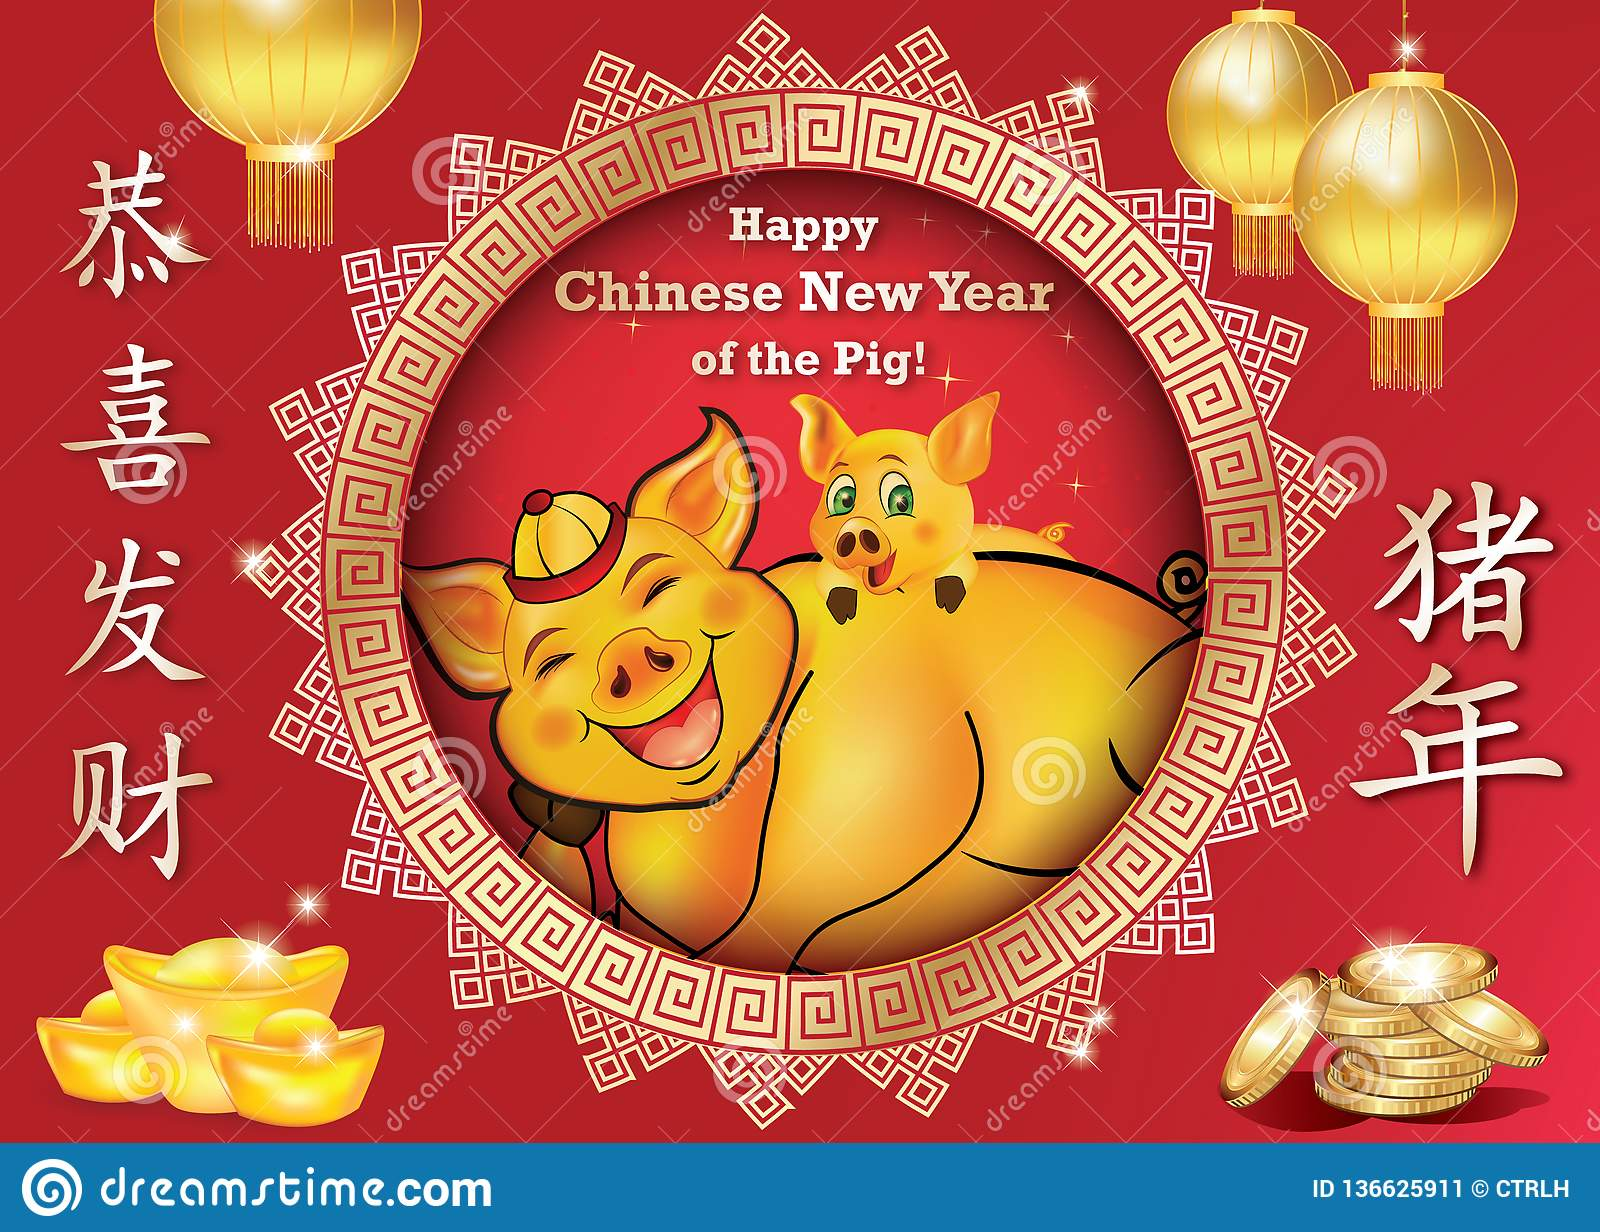 Happy Chinese New Year of the Pig 2019 - greeting card with traditional red background